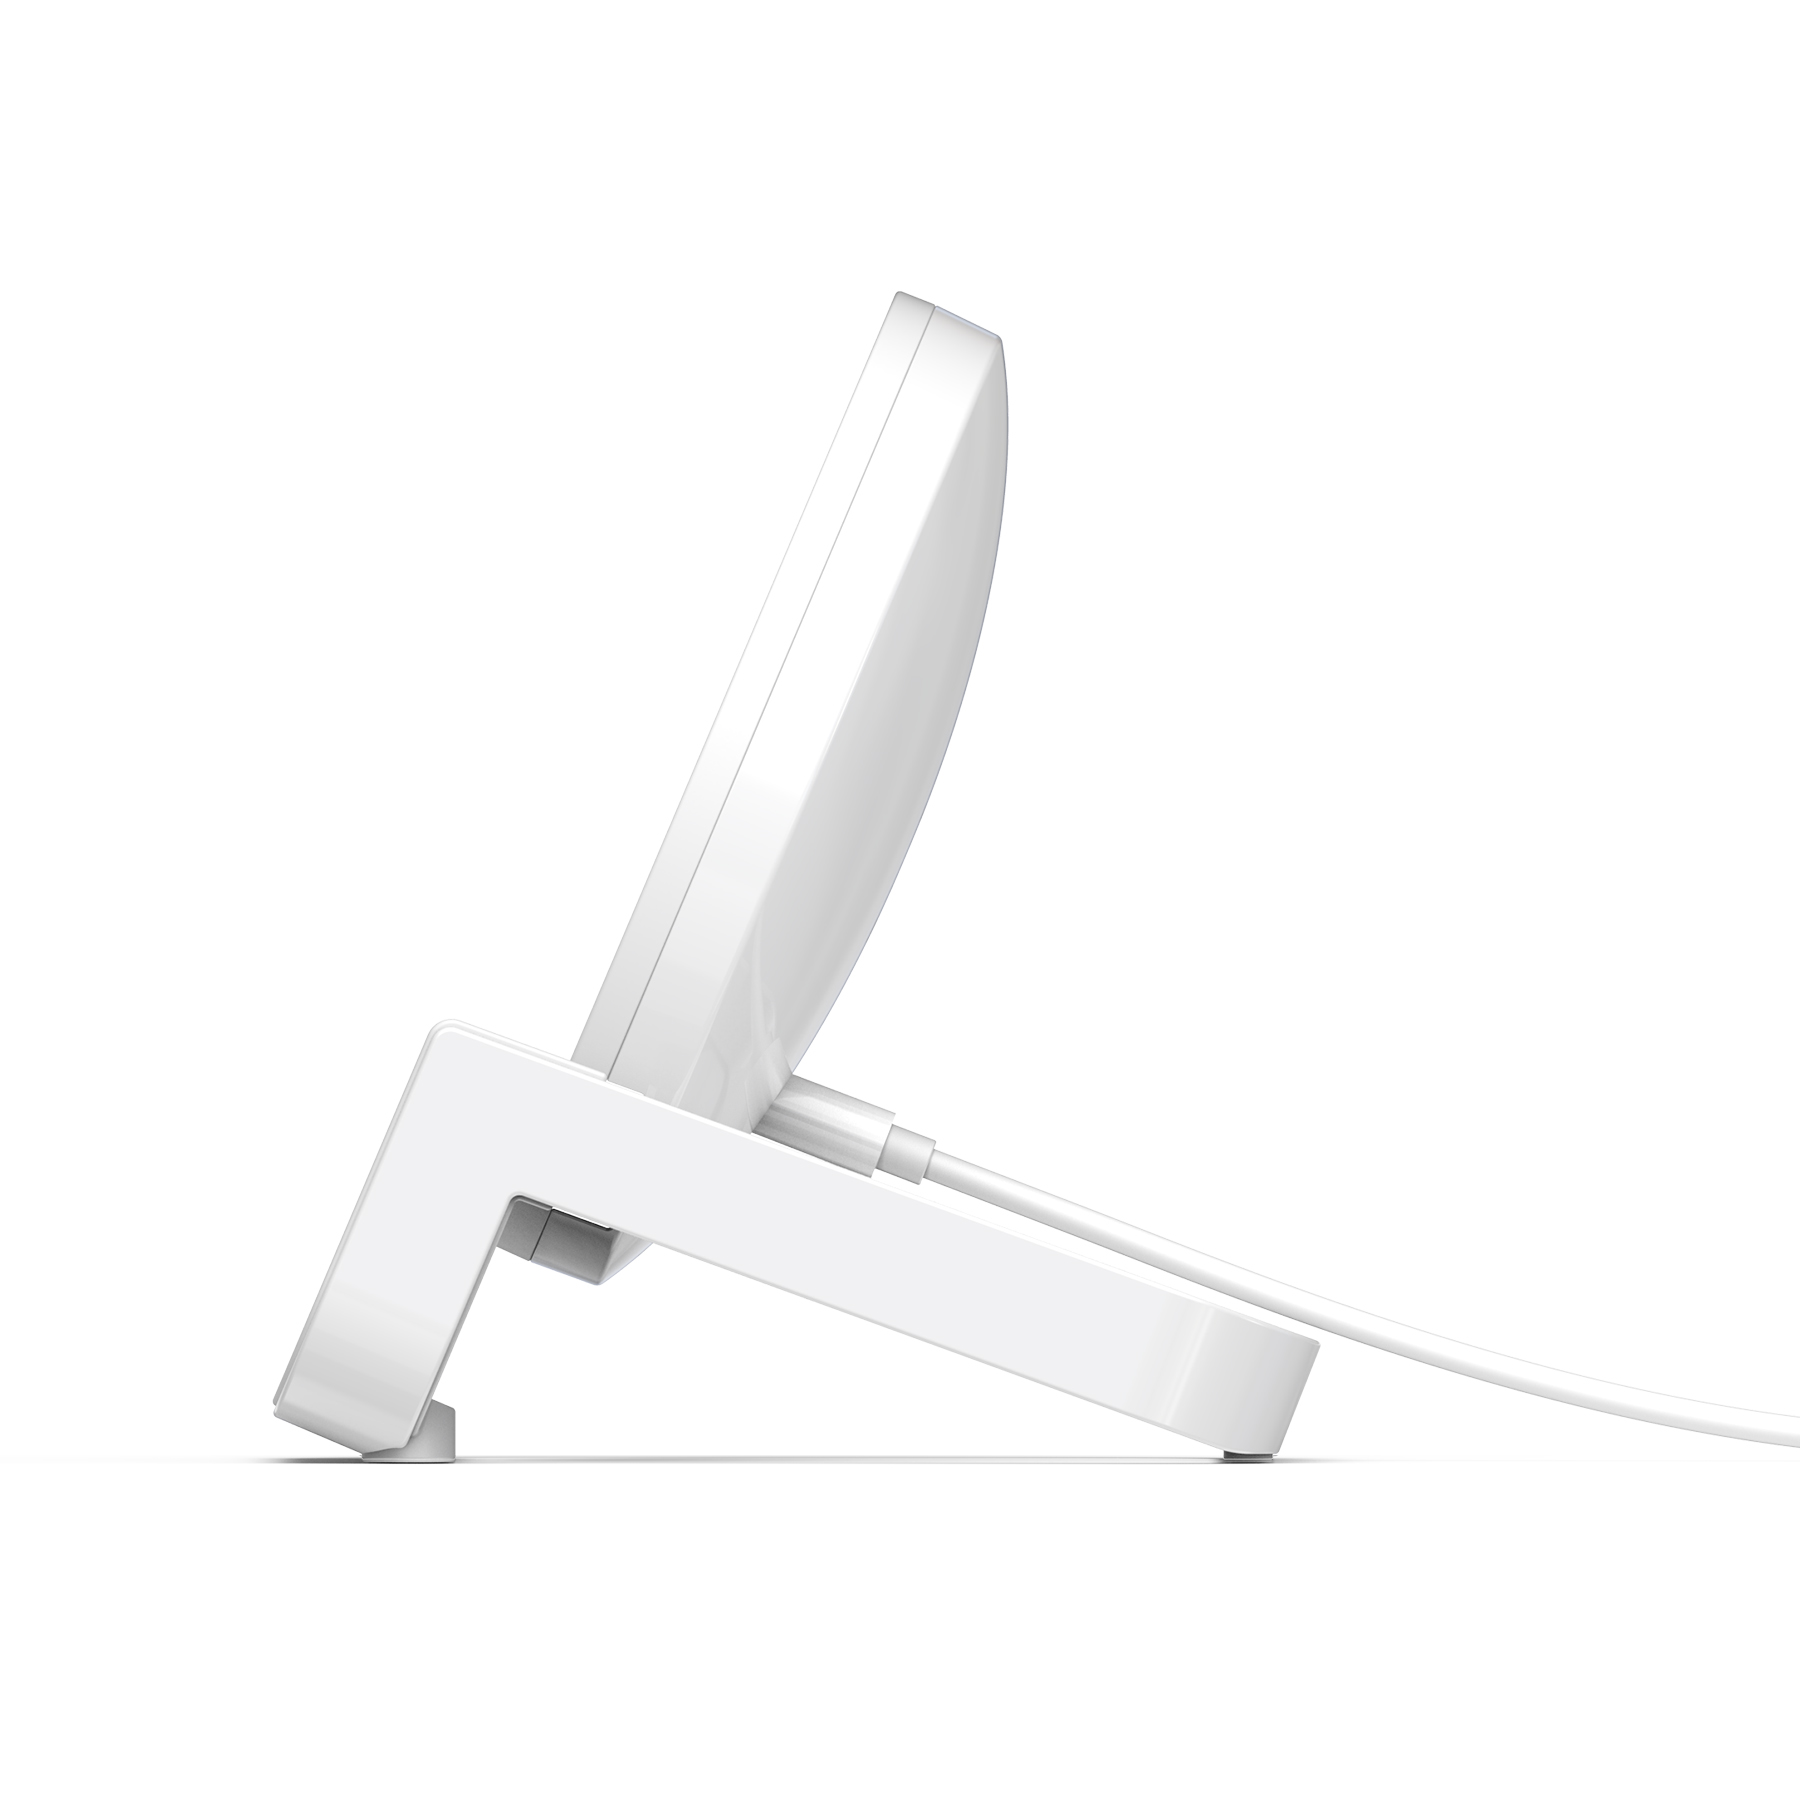 Charging_Stand_Product_2.jpg